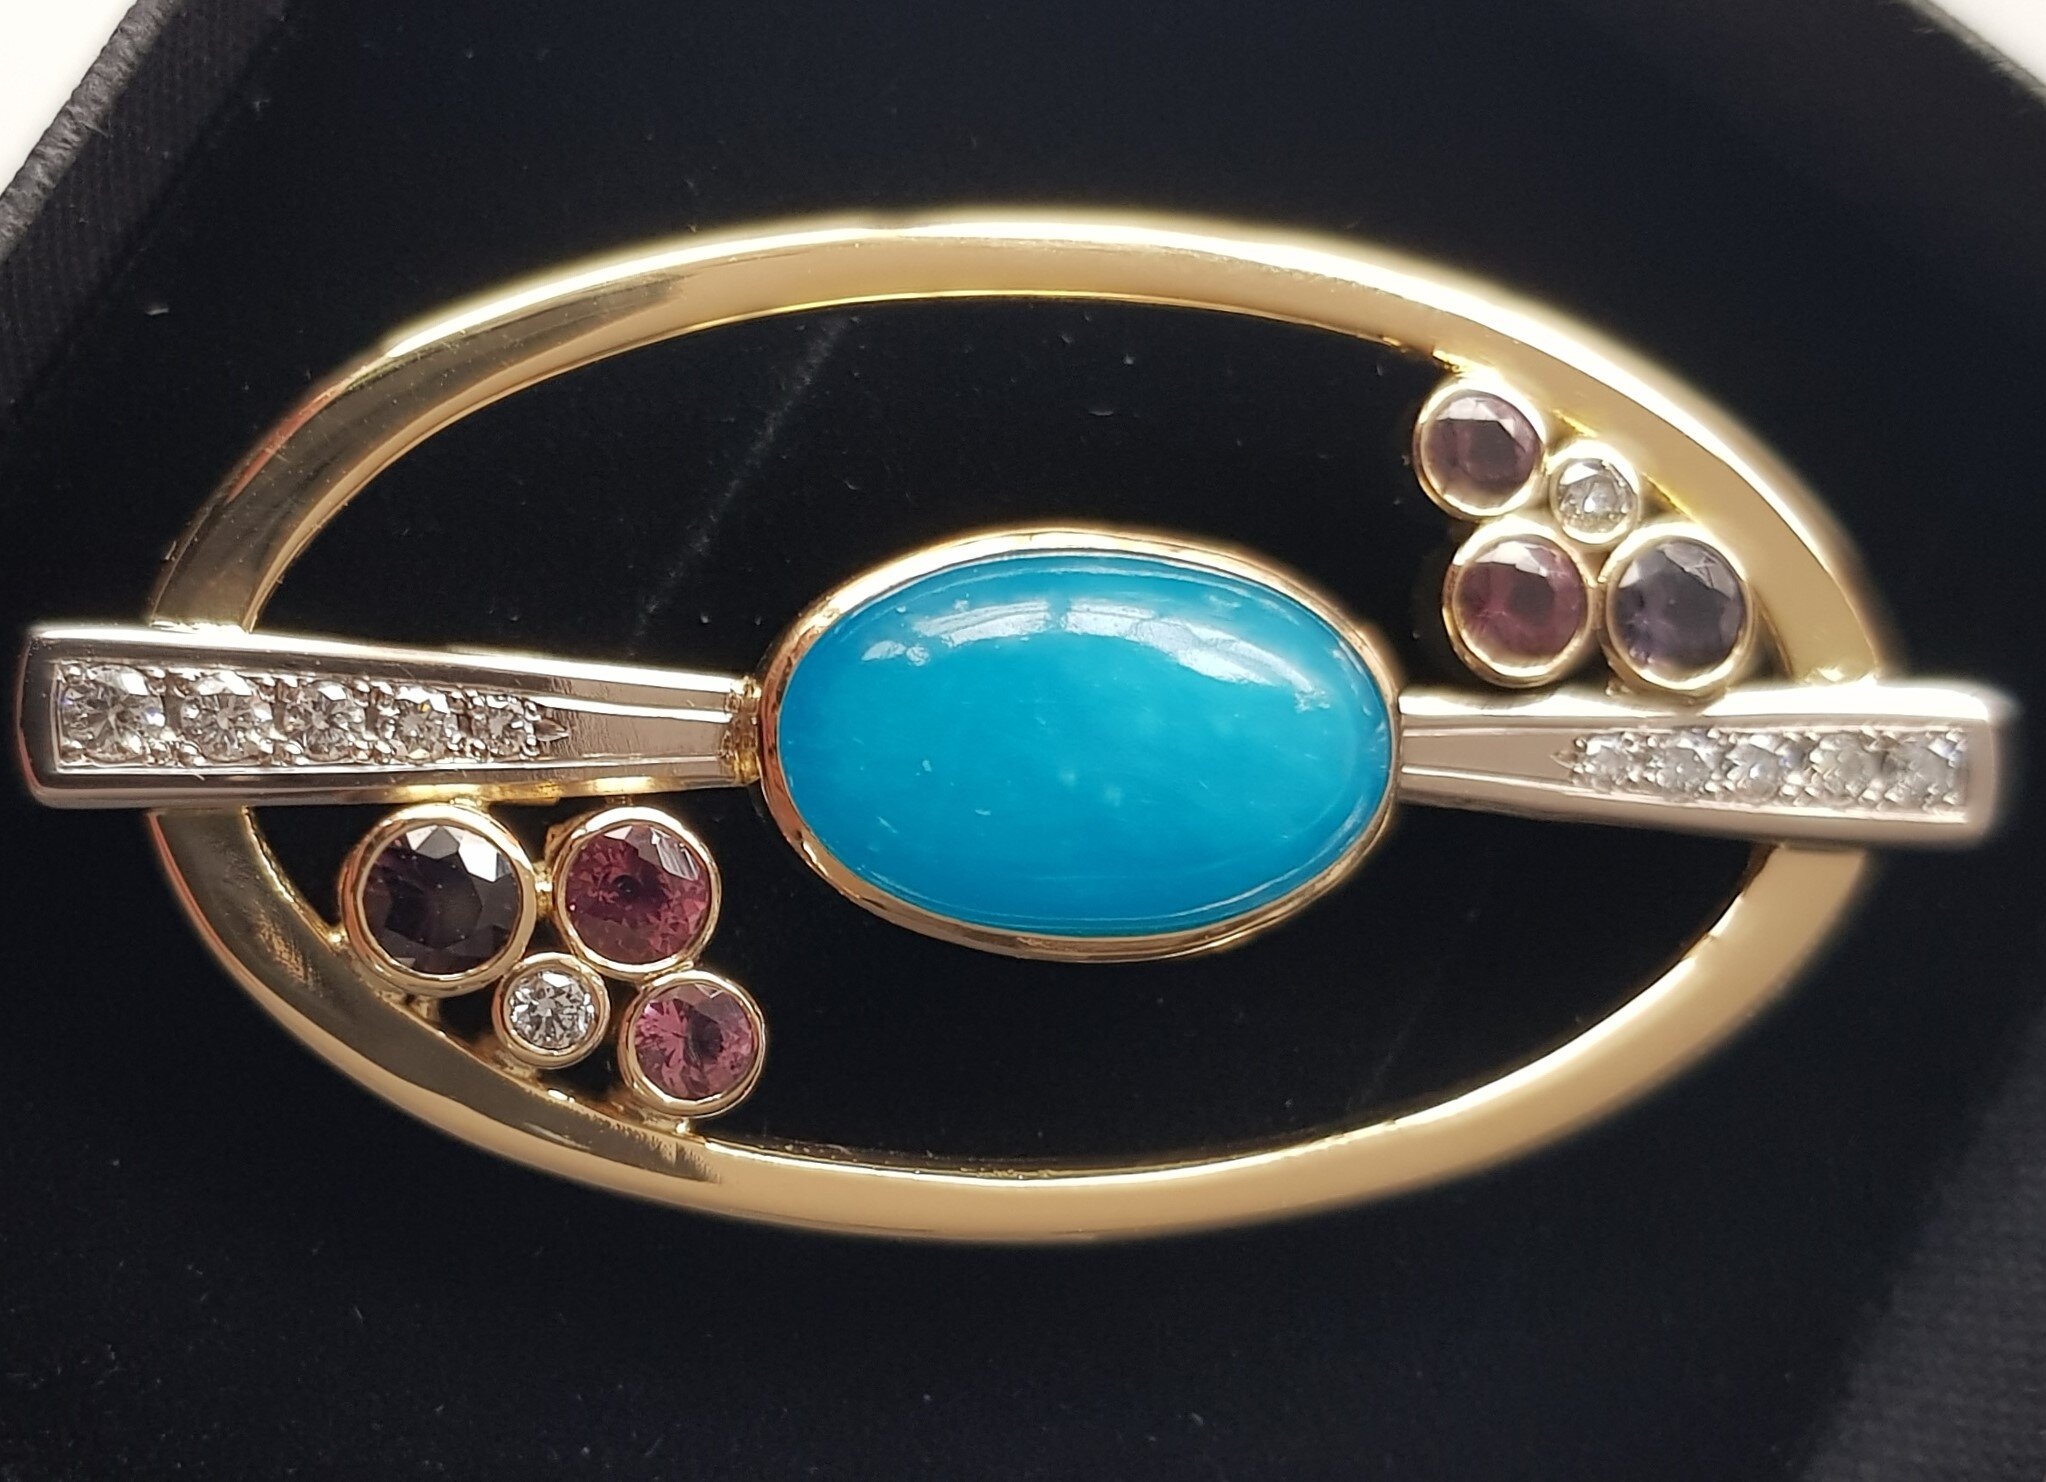 Hemimorphite Diamond and Spinel Brooch/Pendant Commission hand made in 18ct Gold and designed by QV Jewellery.